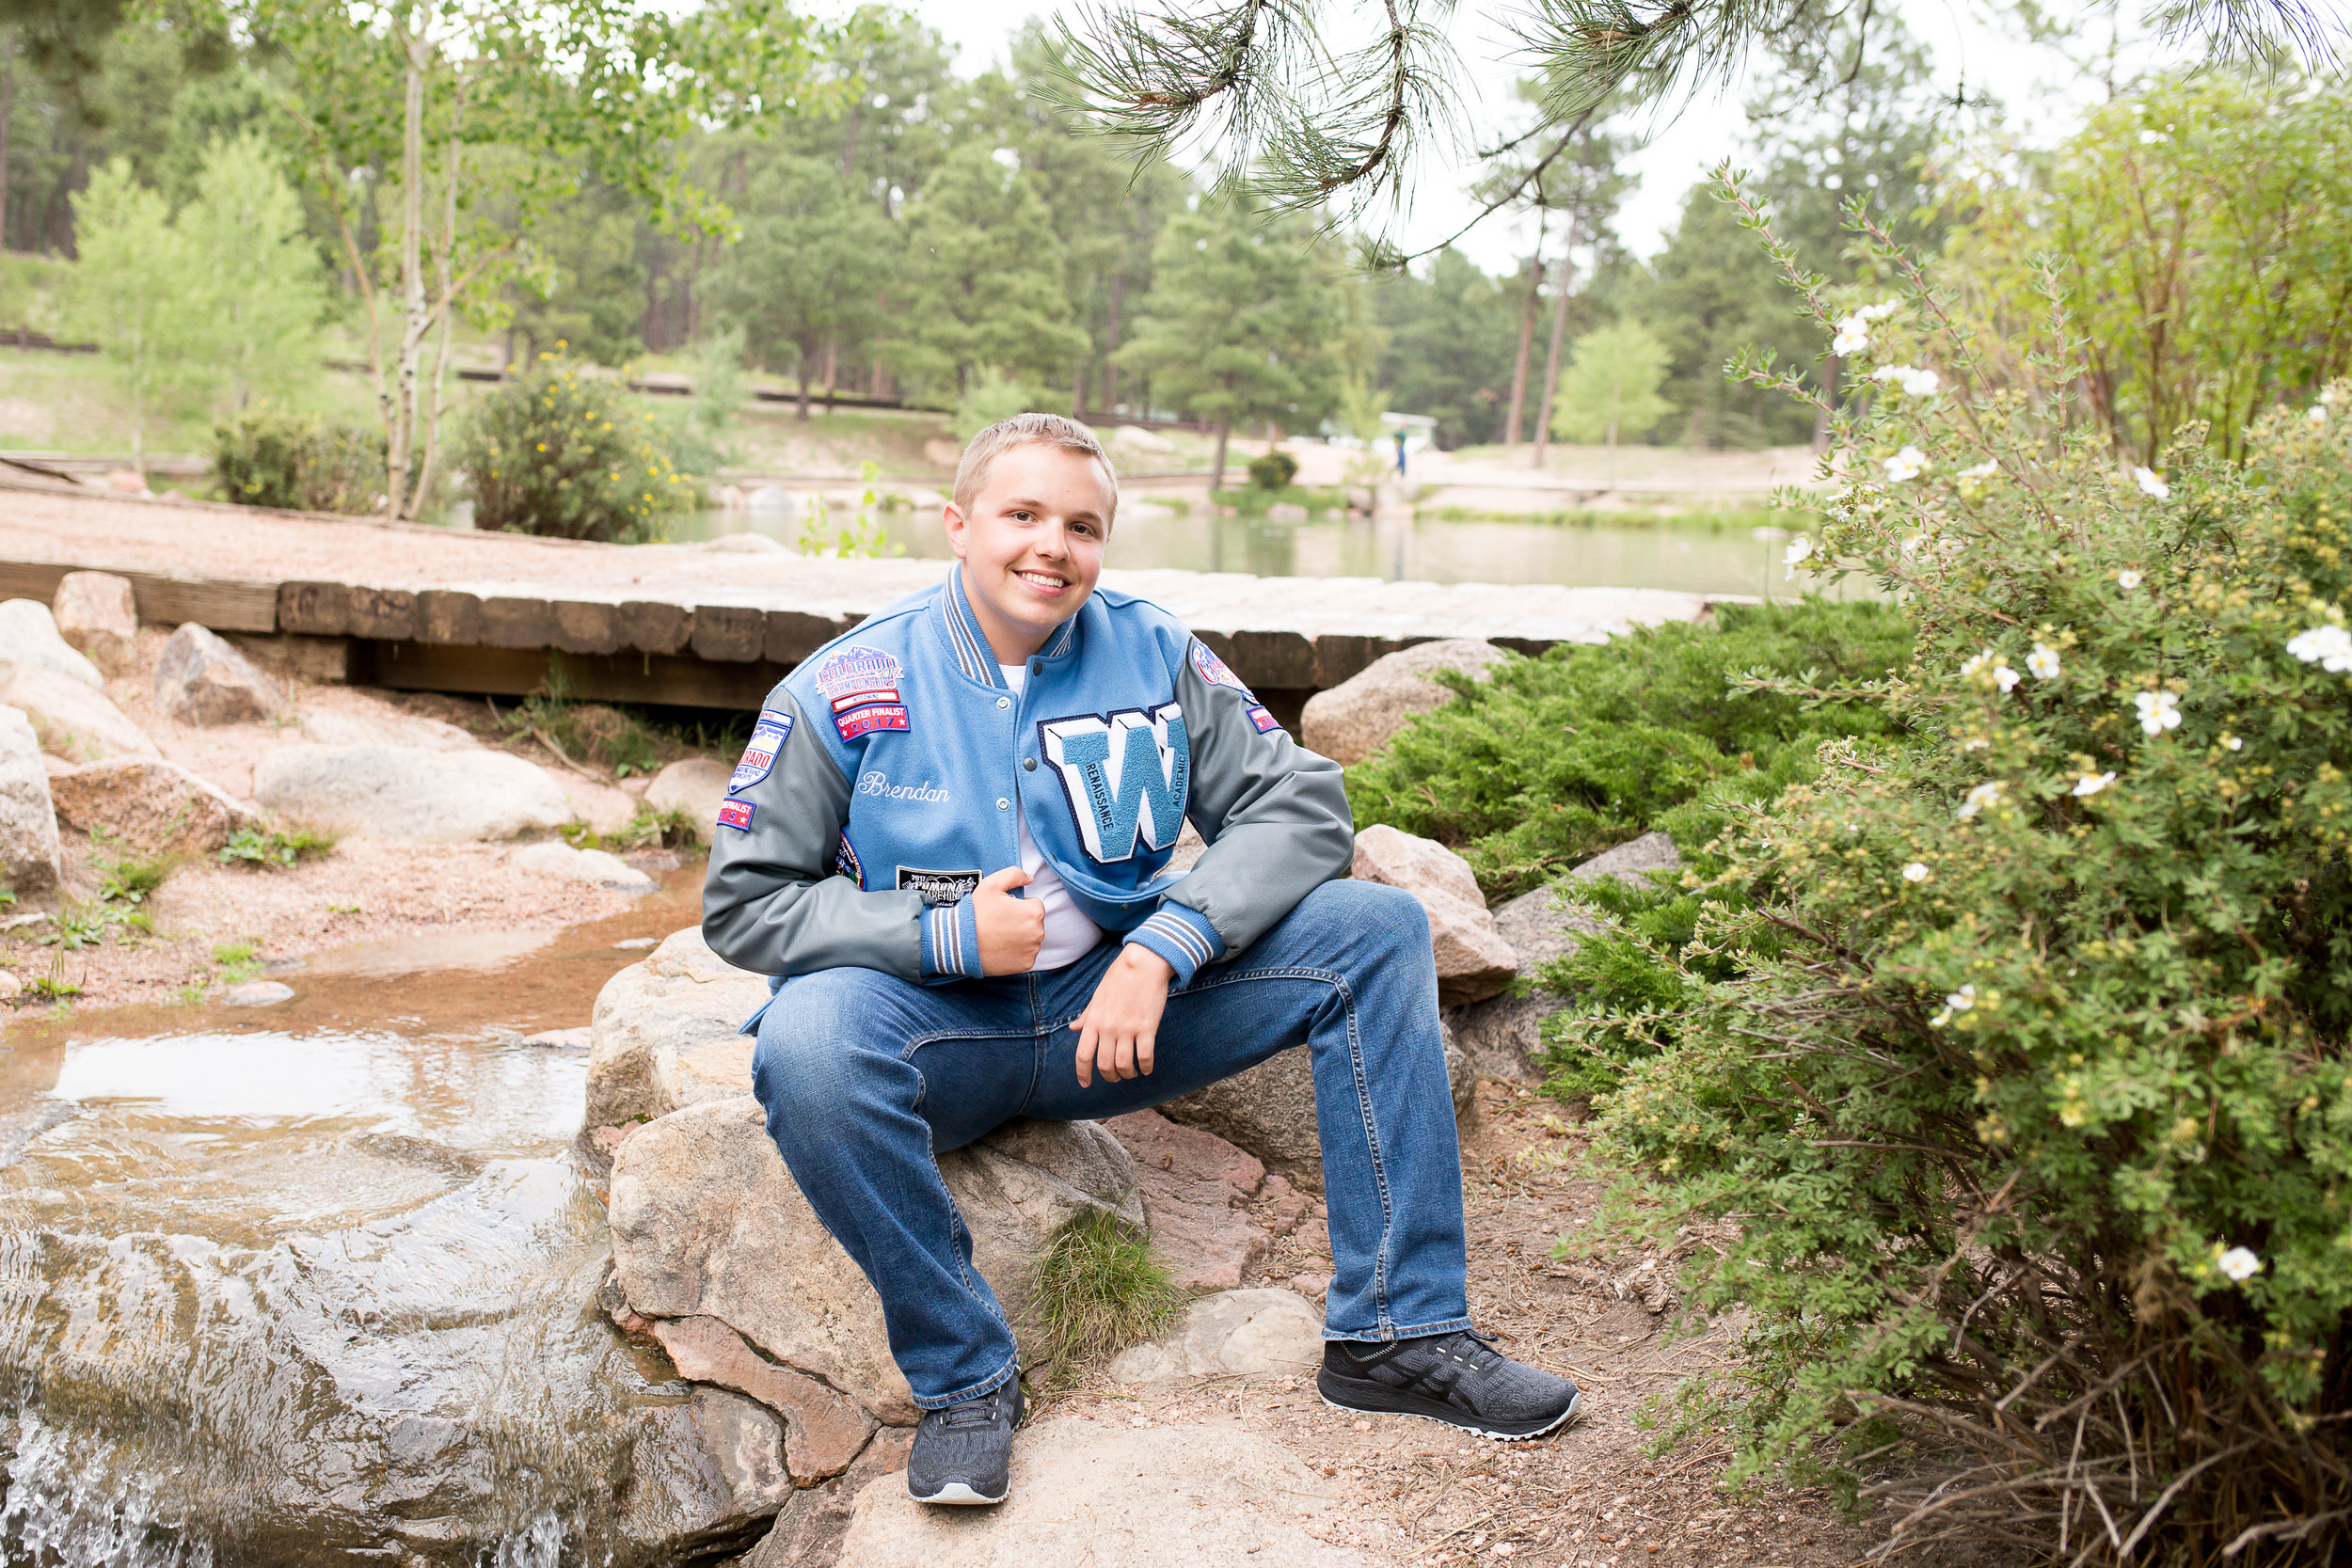 Widefield high s chool senior varisty jacket band | Colorado Springs Senior Photography | Stacy Carosa Photography | Colorado Springs senior photographer | senior session at Fox Run Park